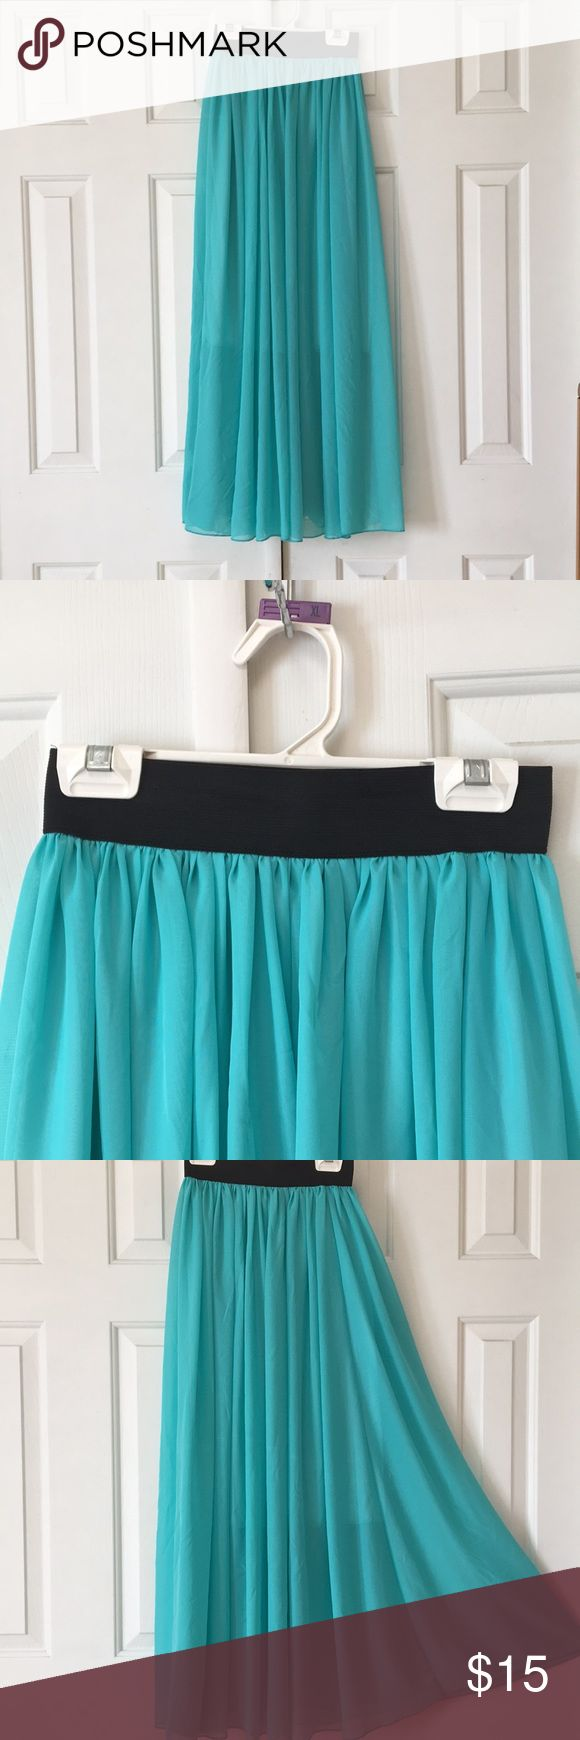 Turquoise Maxi Skirt Super adorable turquoise Maxi skirt (my favorite color btw!!). I bought it and never wore it, but I took the tags off thinking I would (silly me). Super gorgeous, flowy skirt. Would look adorable with heels or flats (up to you). It's a Chinese brand so, while it says large, it may run a bit small. However the band is quite stretchy. Comes from a non-smoking home. Please let me know if you have any questions at all!! Have a great day! Skirts Maxi